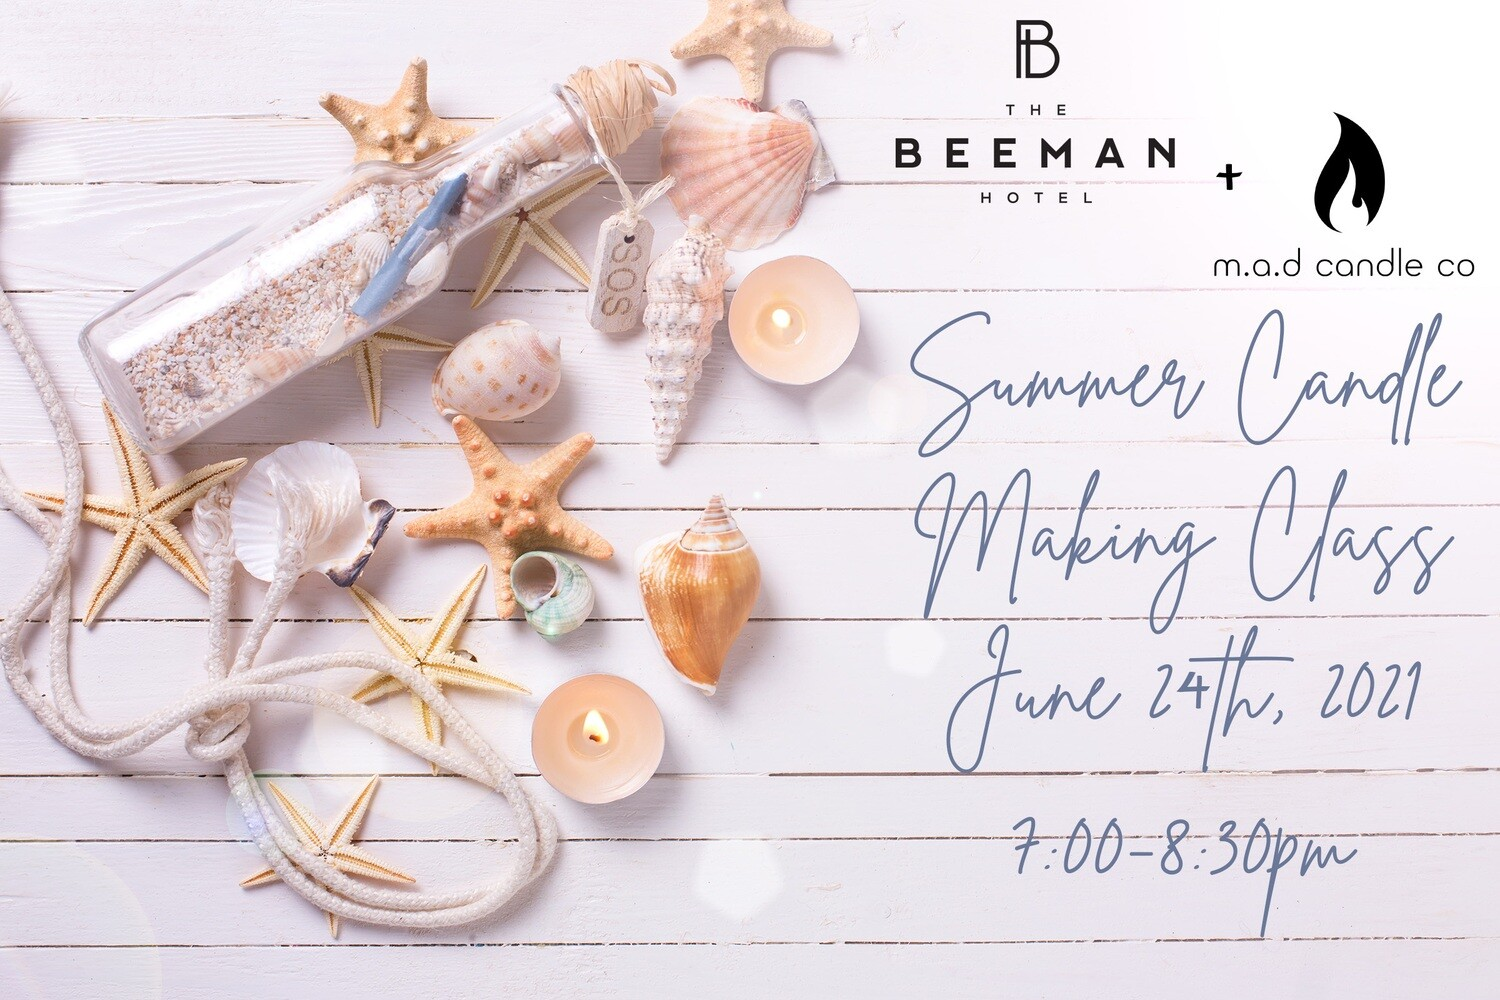 Summer Candle Making Class At The Beeman Hotel June 24th, 2021